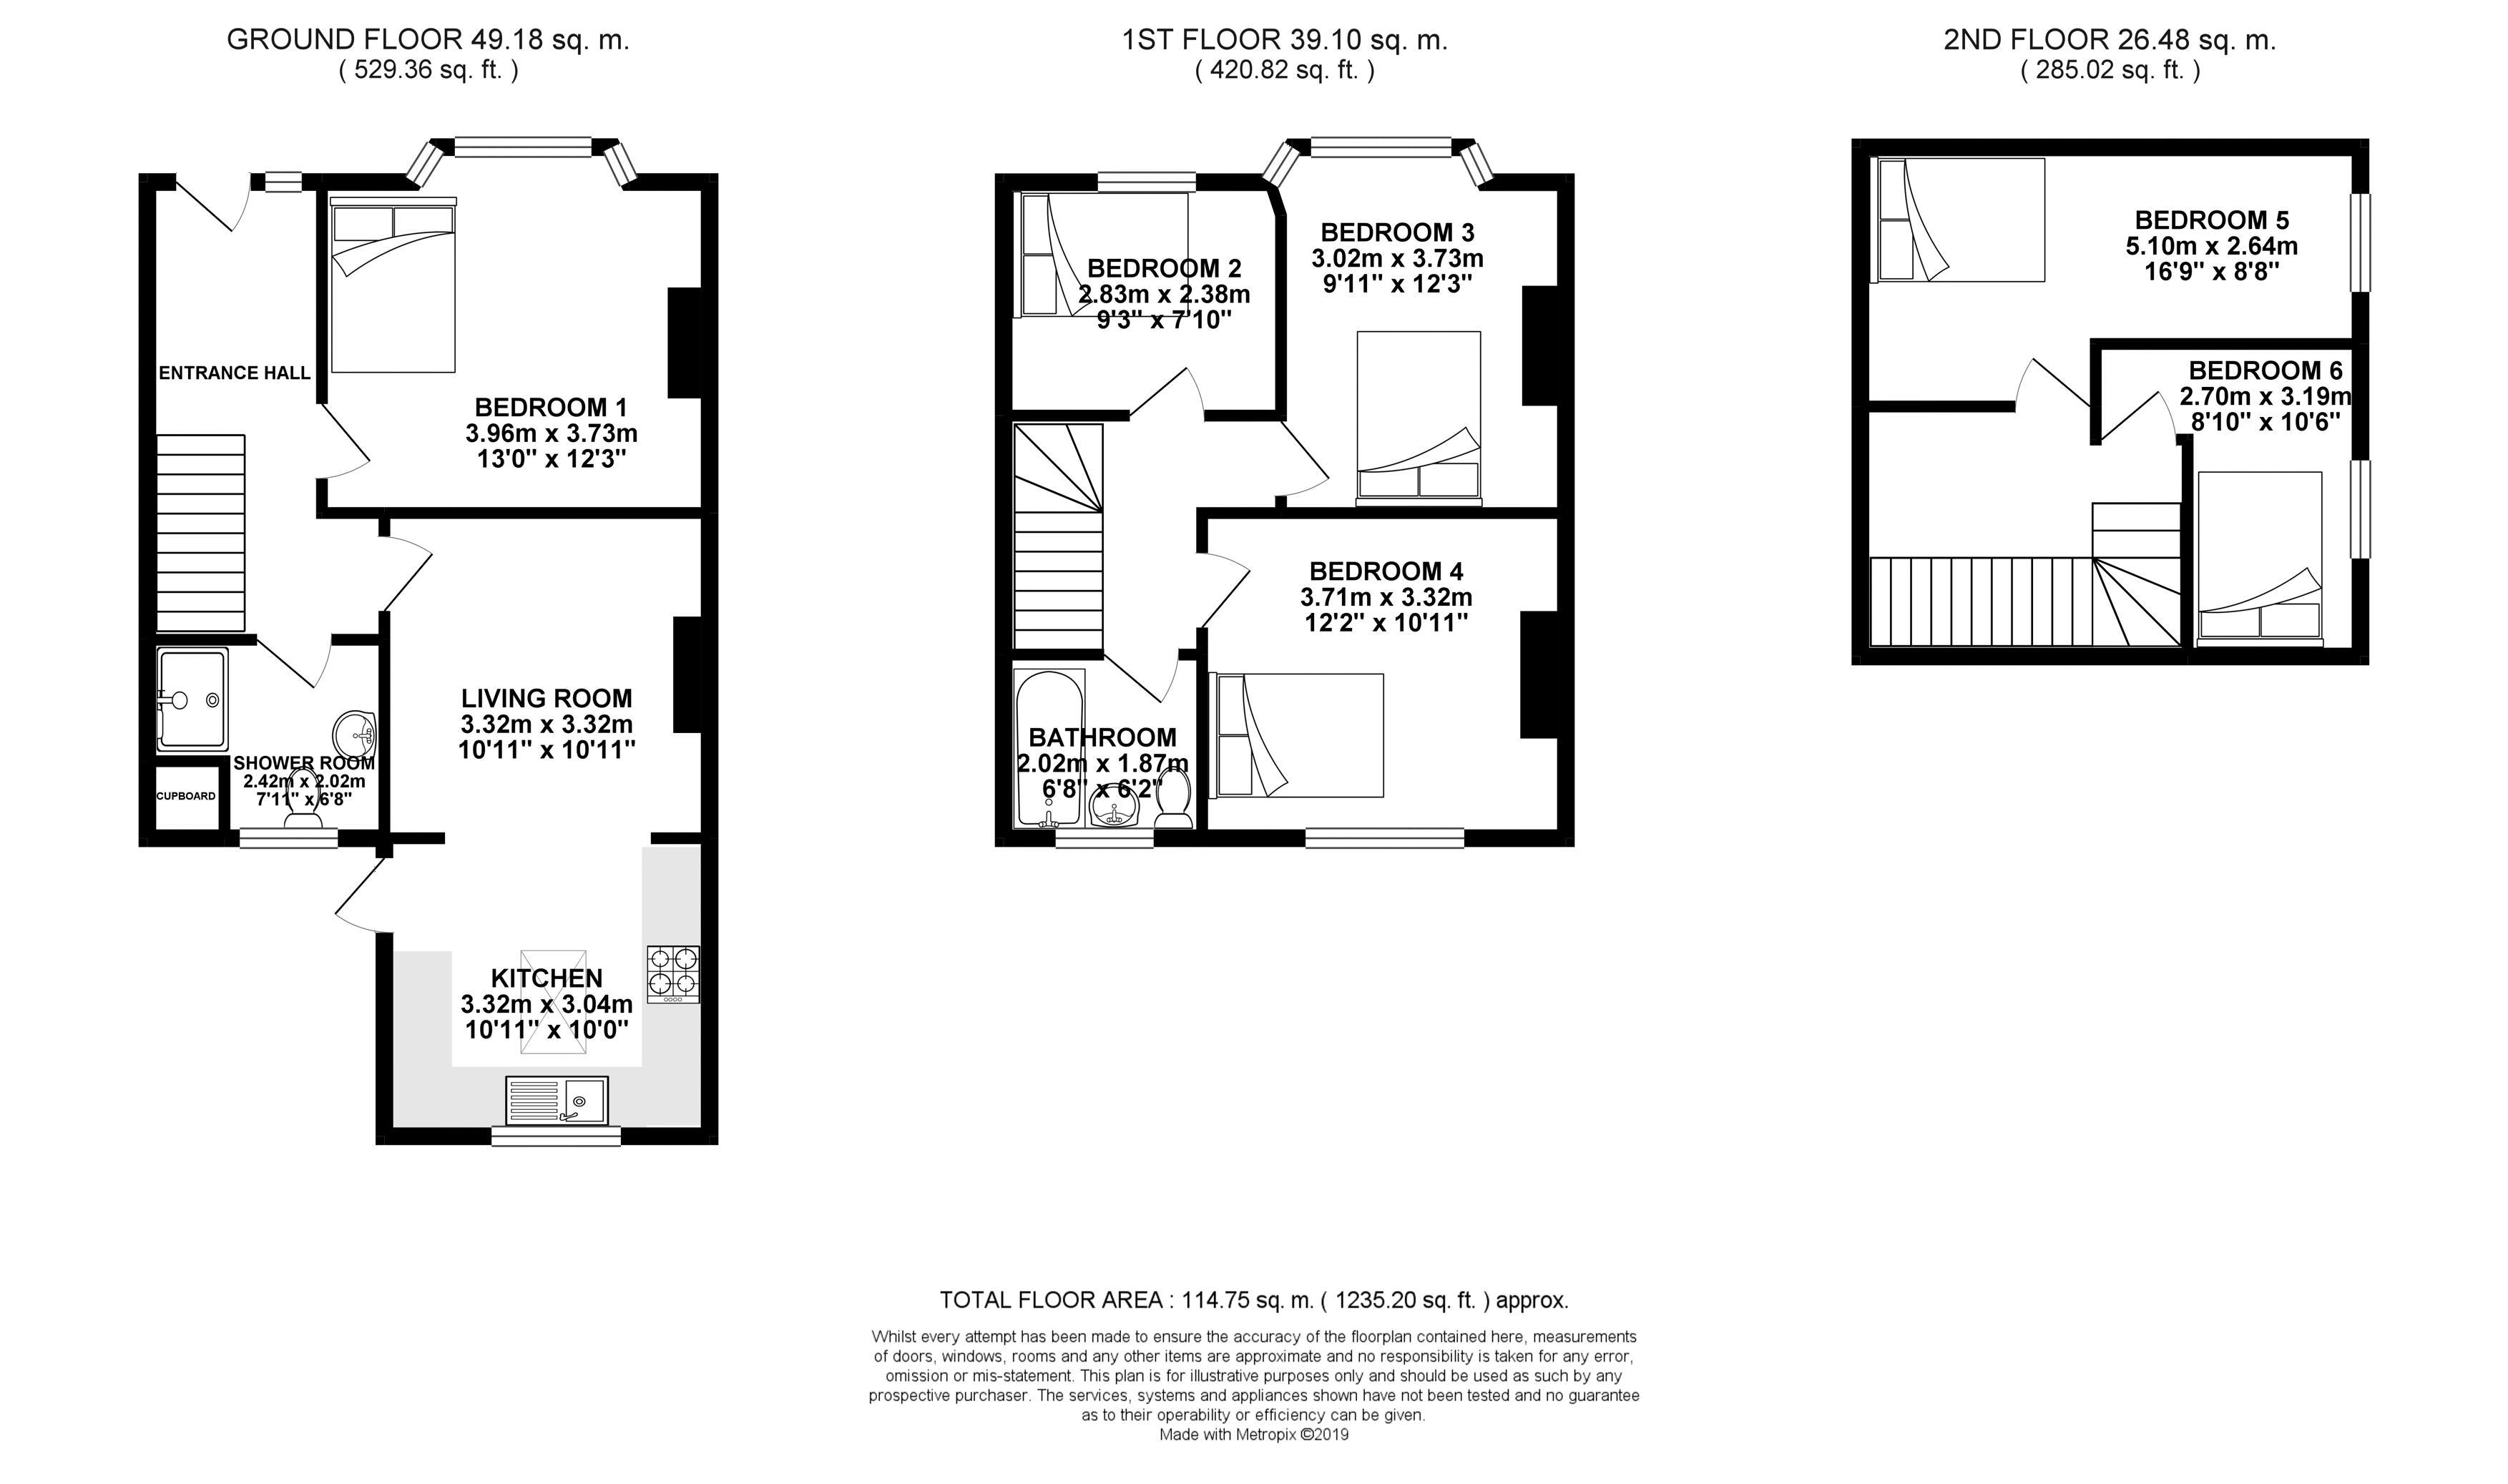 Floor plans for Eastbourne Road, Brighton property for sale in Coombe Road, Brighton by Coapt